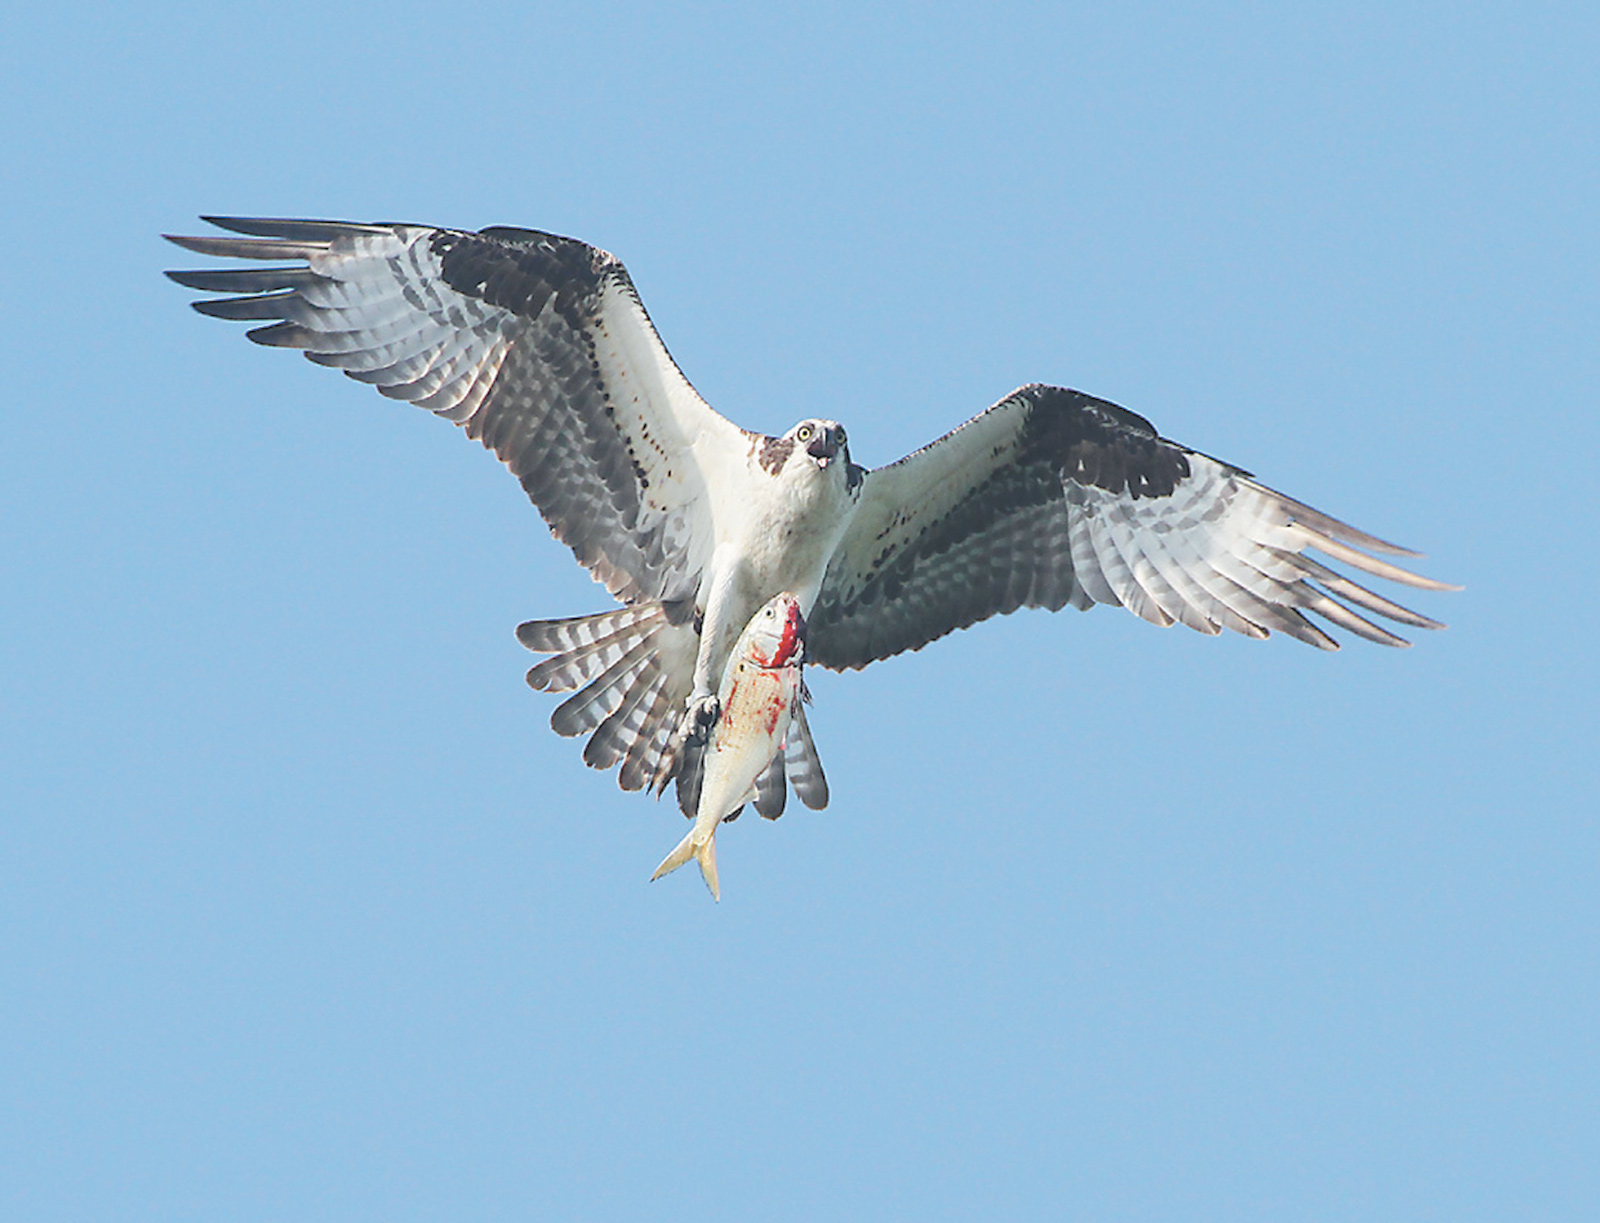 An adult osprey carrying a fish to feed its family in the nest, Jamaica Bay Wildlife Refuge; from Leslie Day's Field Guide to the Neighborhood Birds of New York City